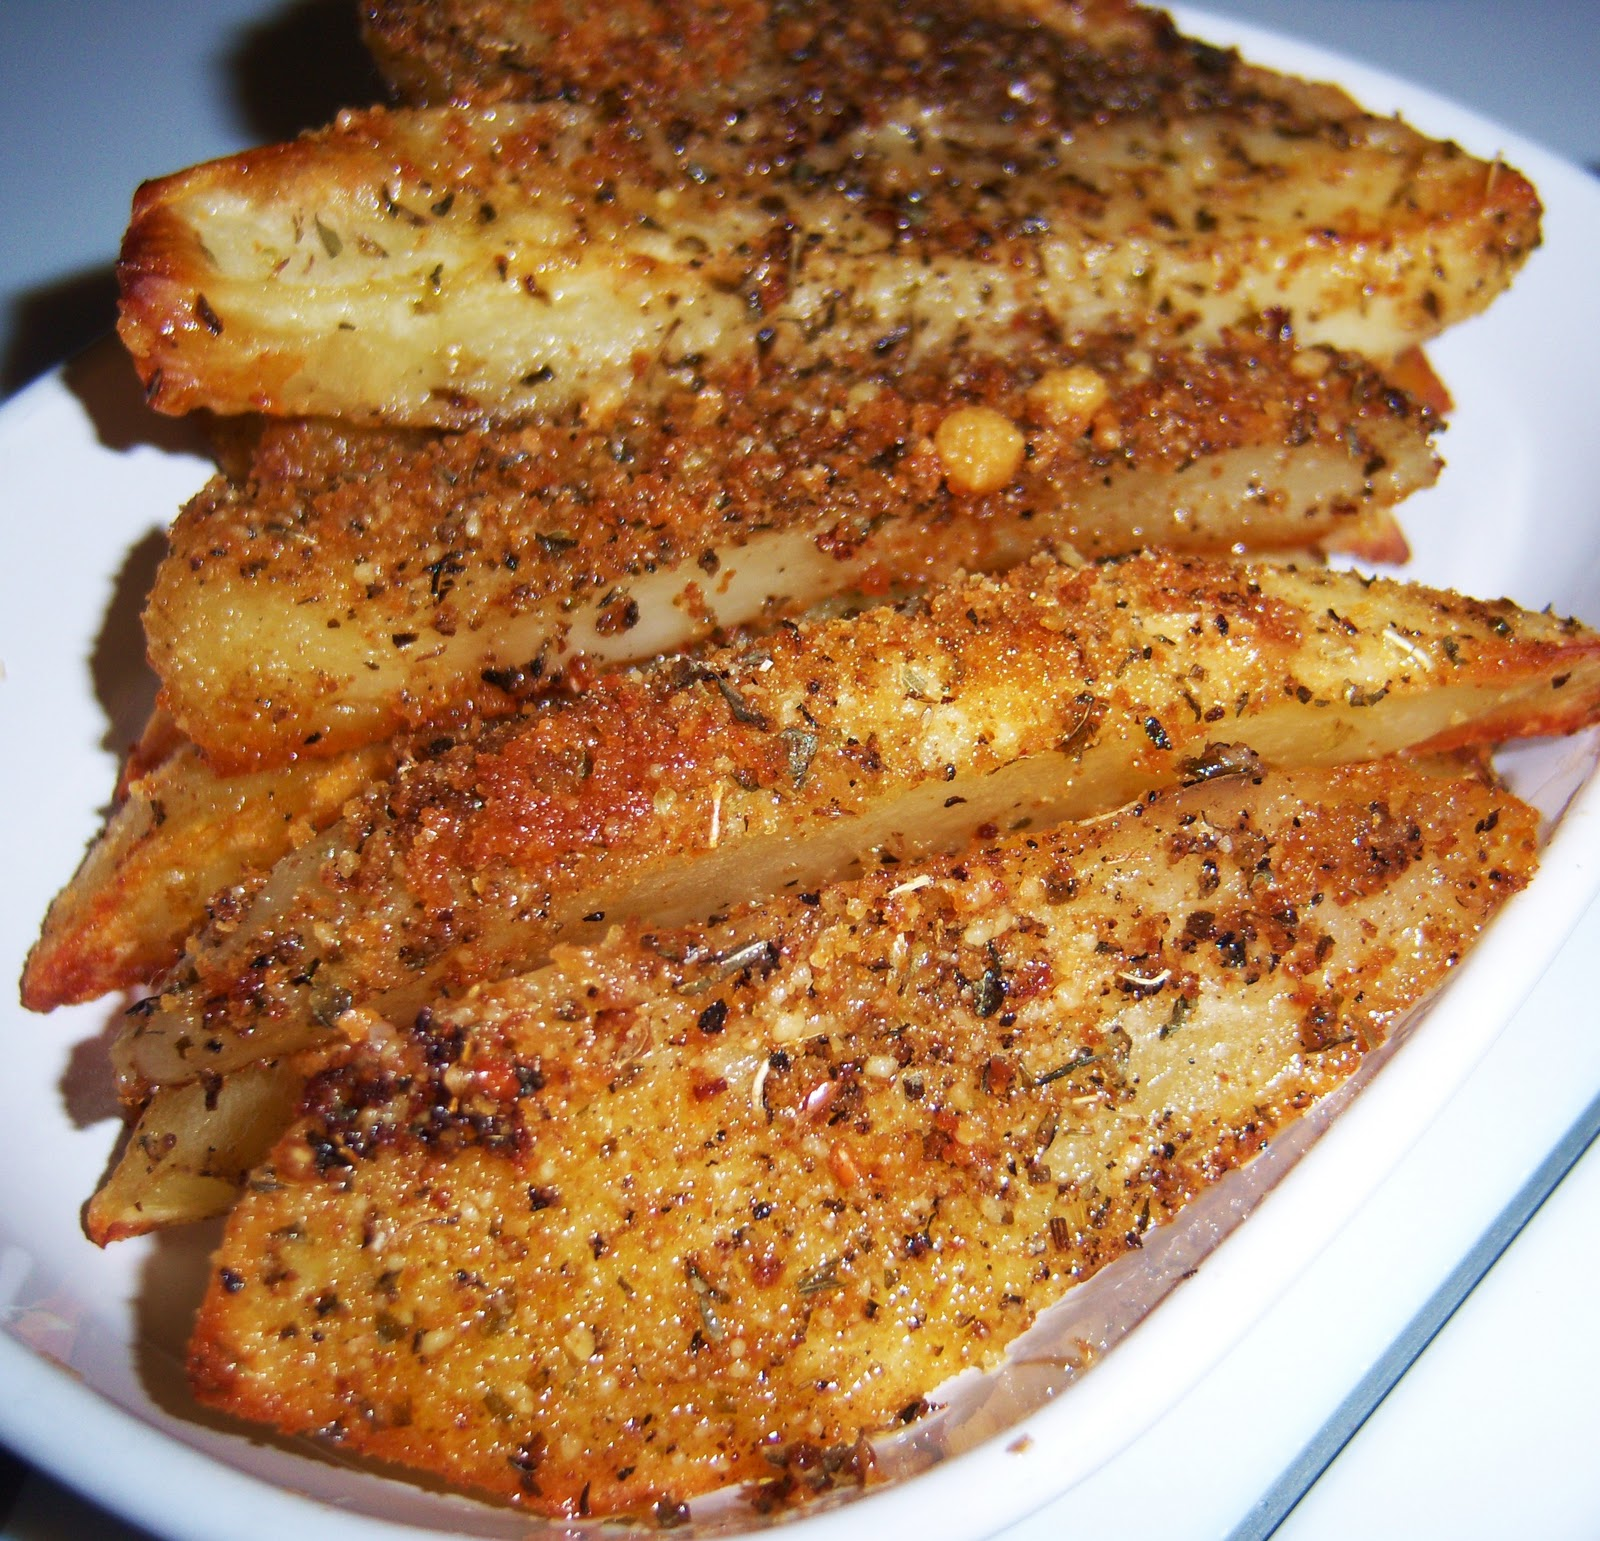 ... Cookin' Italian Style Cuisine: Baked Parmesan Crusted Potato Wedges